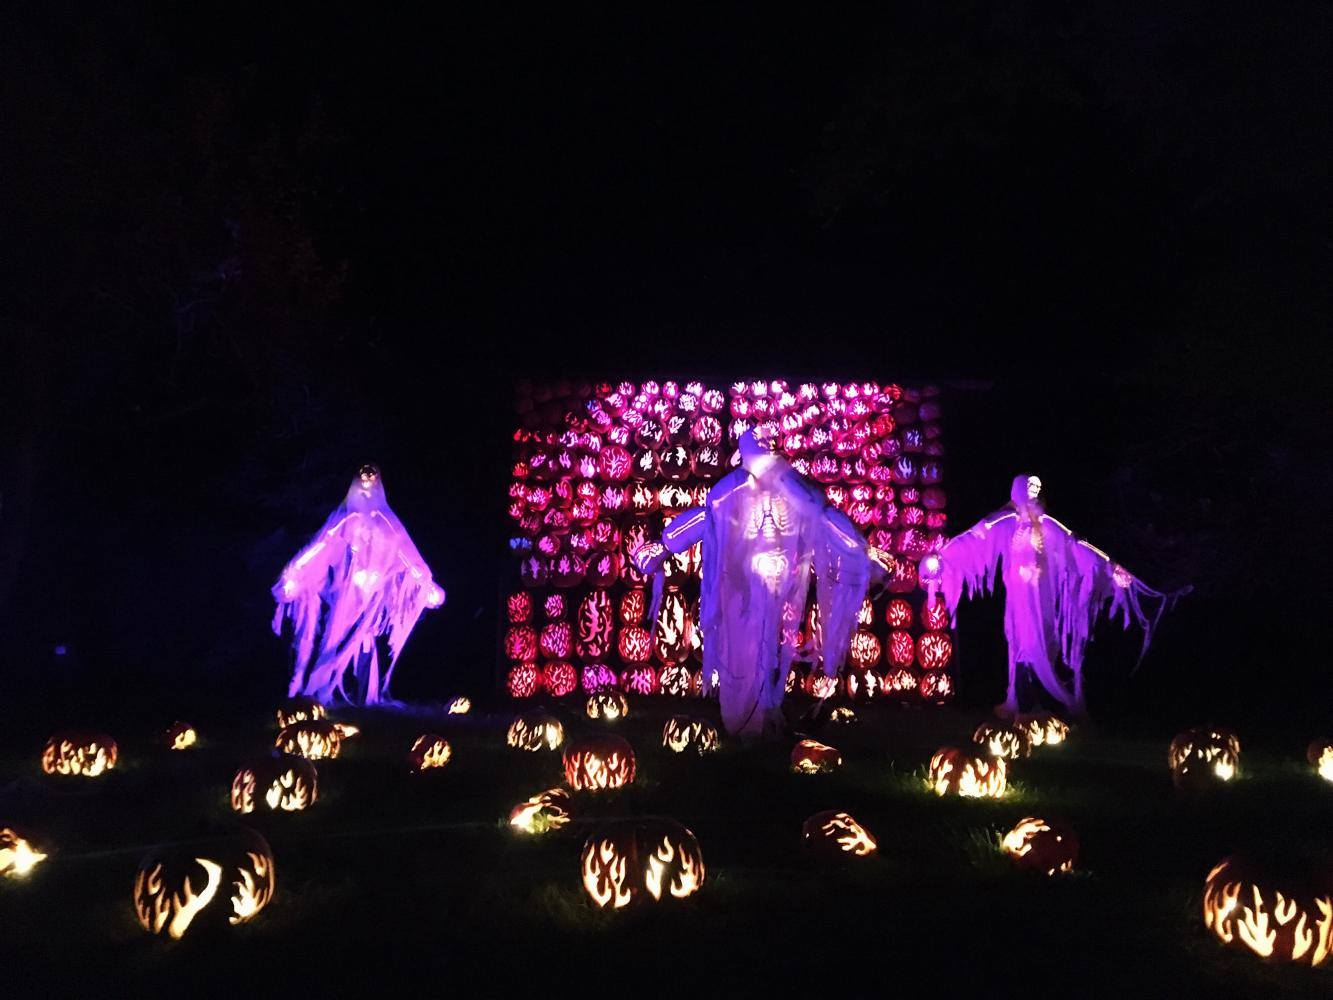 The famous Pumpkin Blaze at Van Cortlandt Manor in Croton-on-Hudson attracts thousands of visitors every fall season.